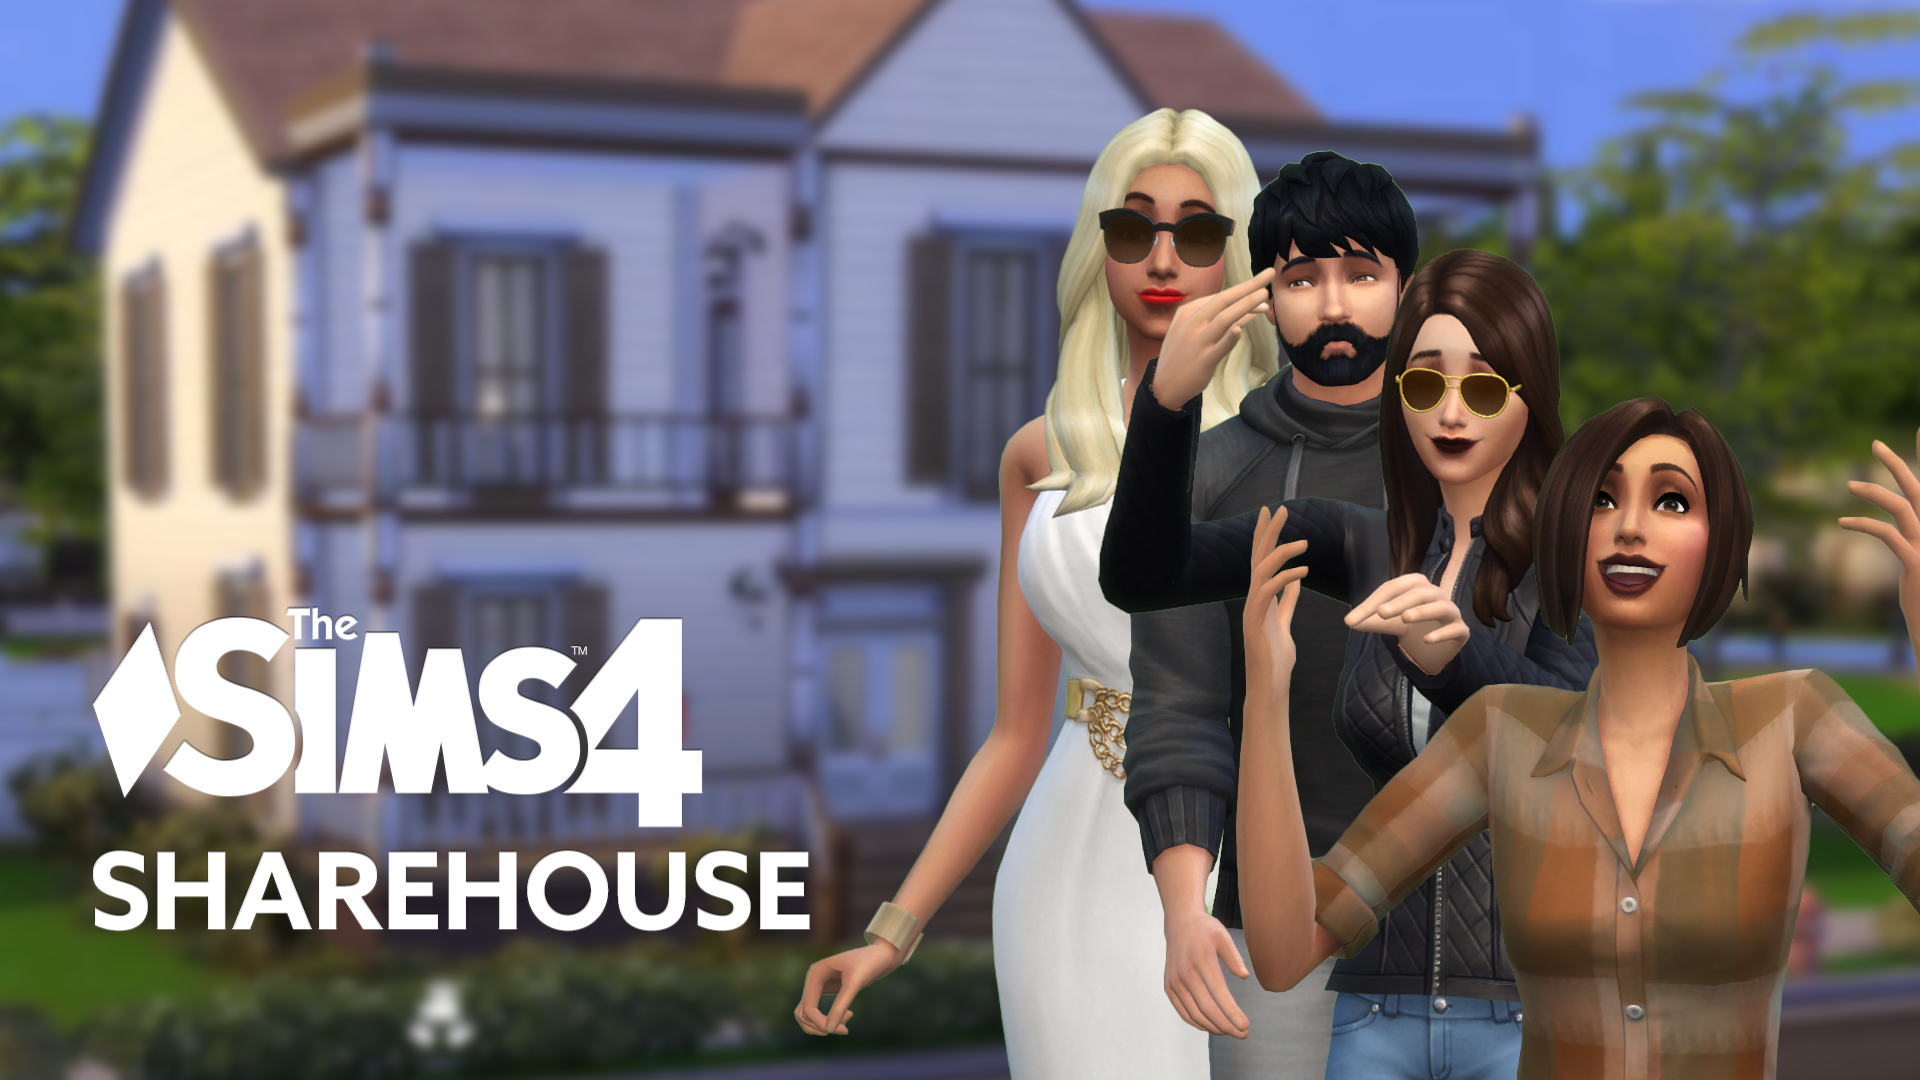 Welcome to the Share House (The Sims 4 Share House: Part 1)